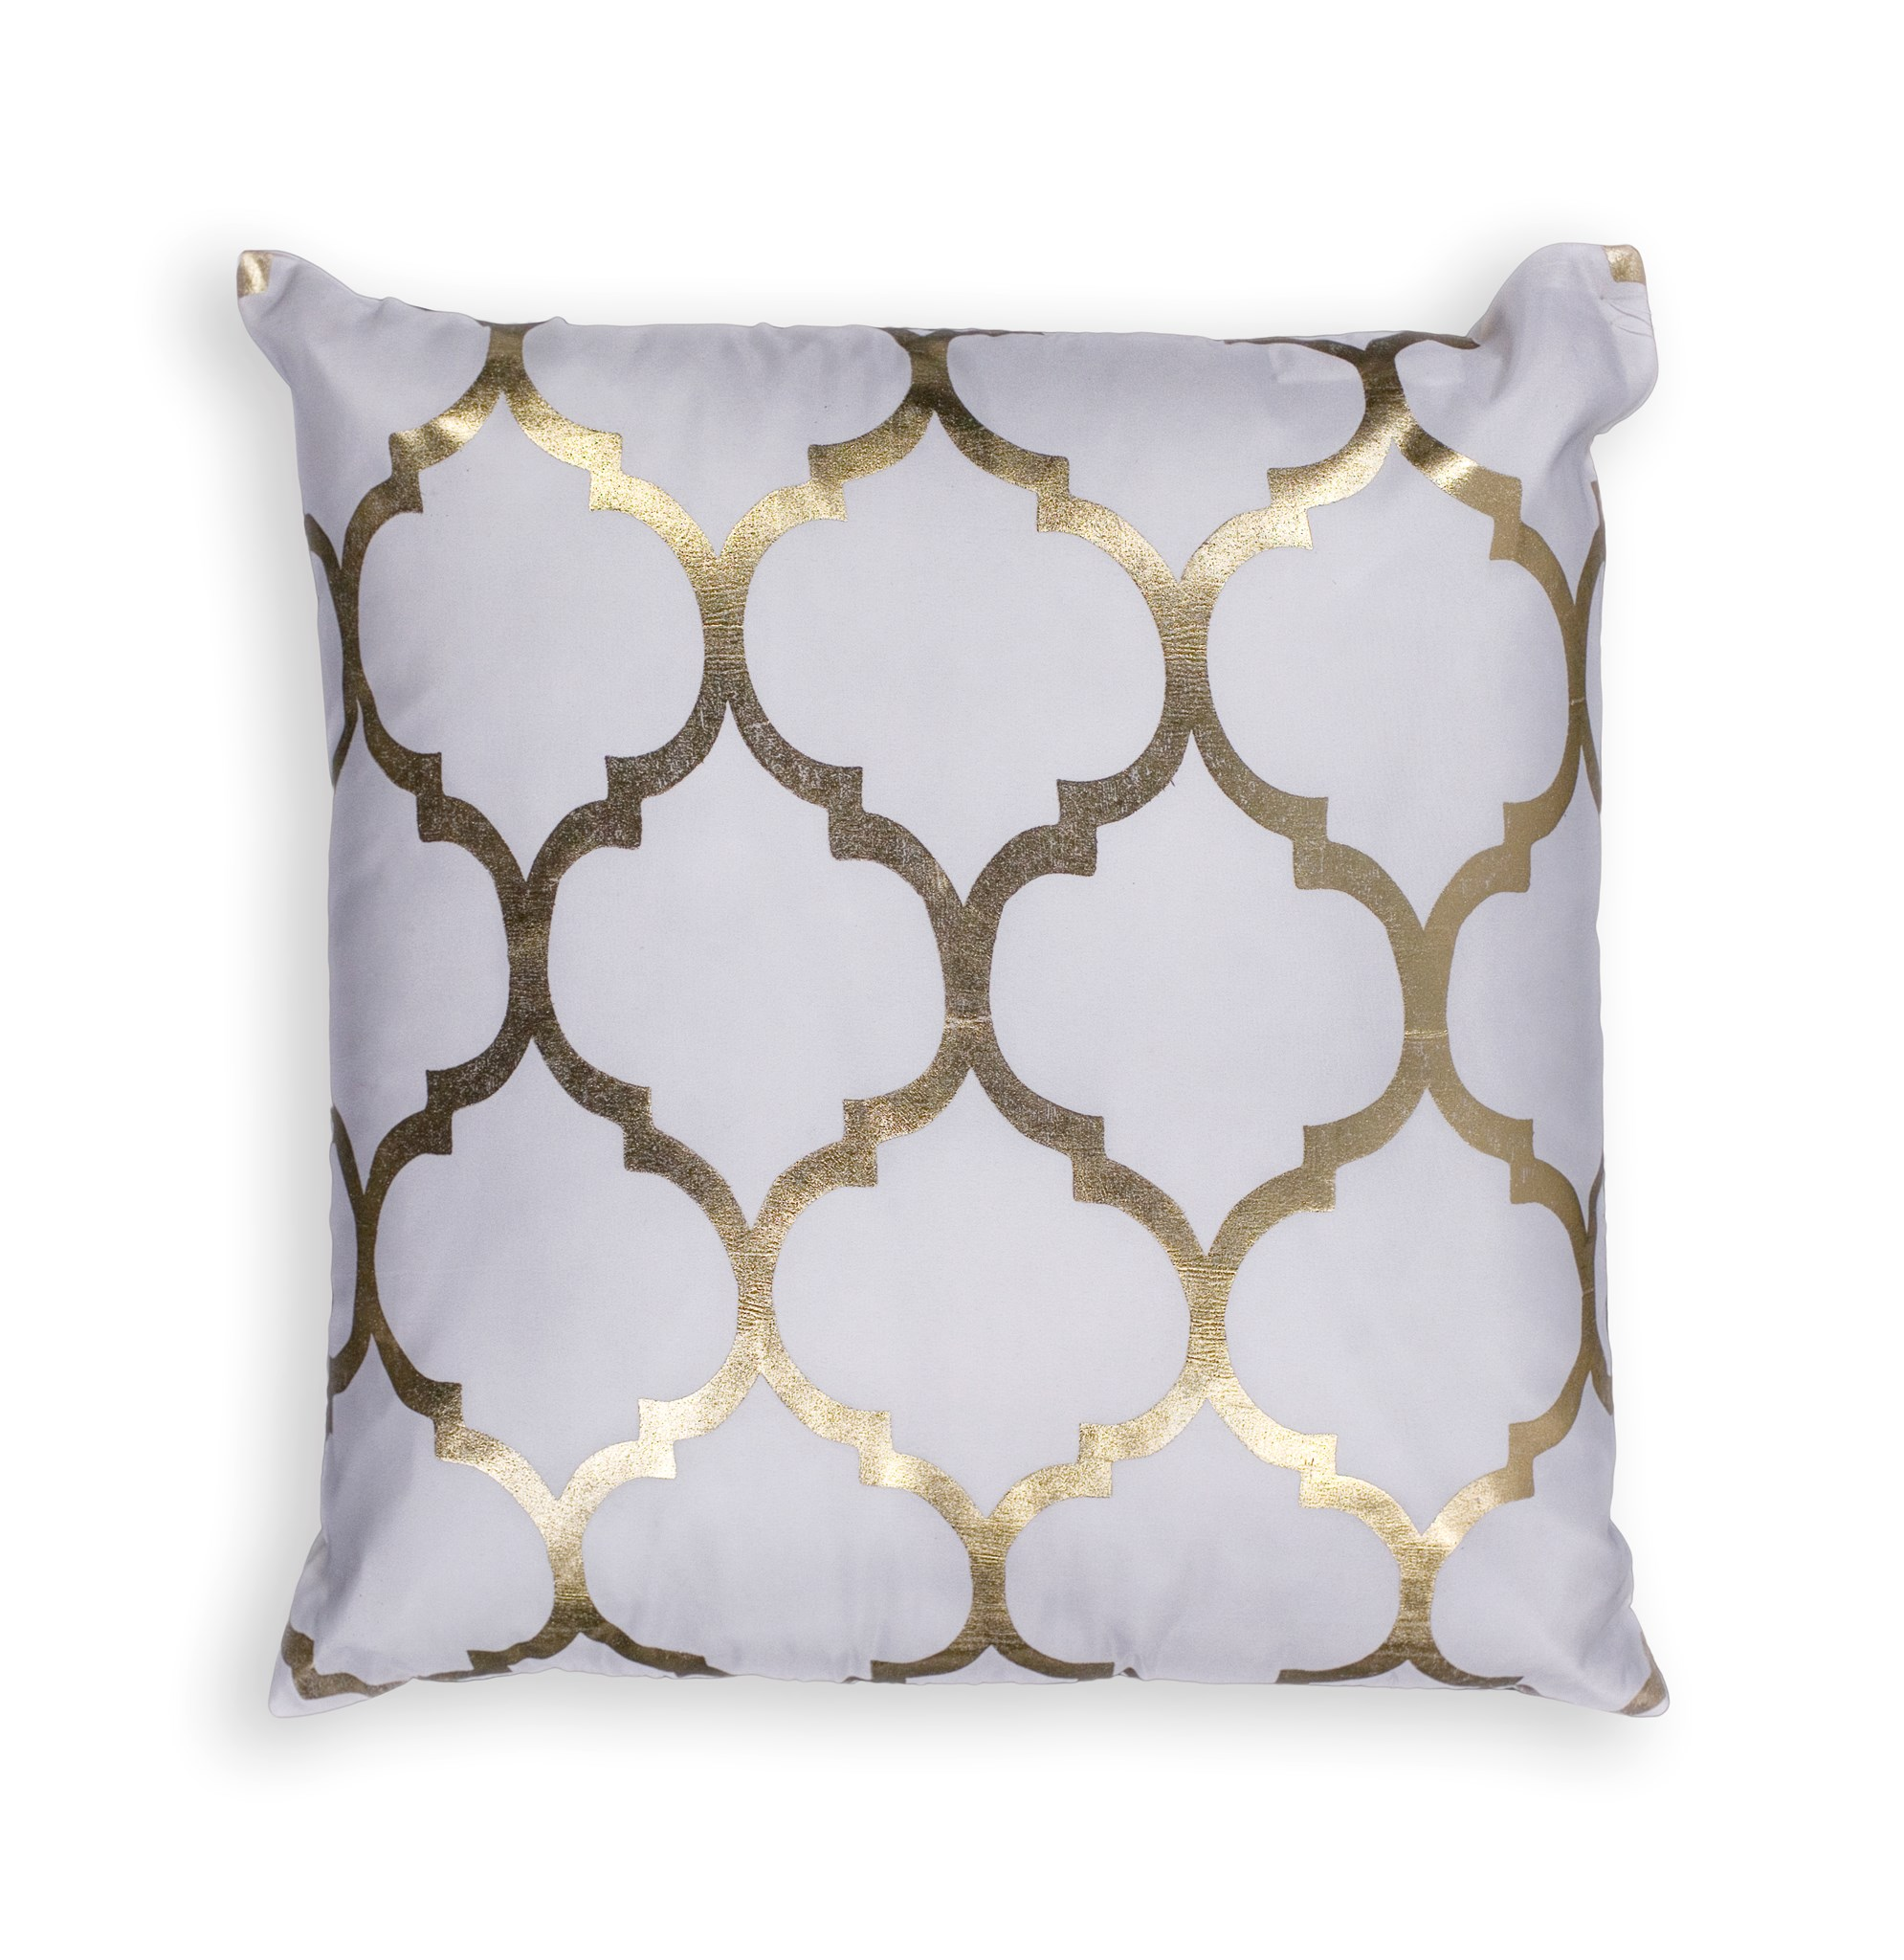 couch sofa for pillow of design room awesome contemporary pillows best amazing living decorative set throw trellis with review